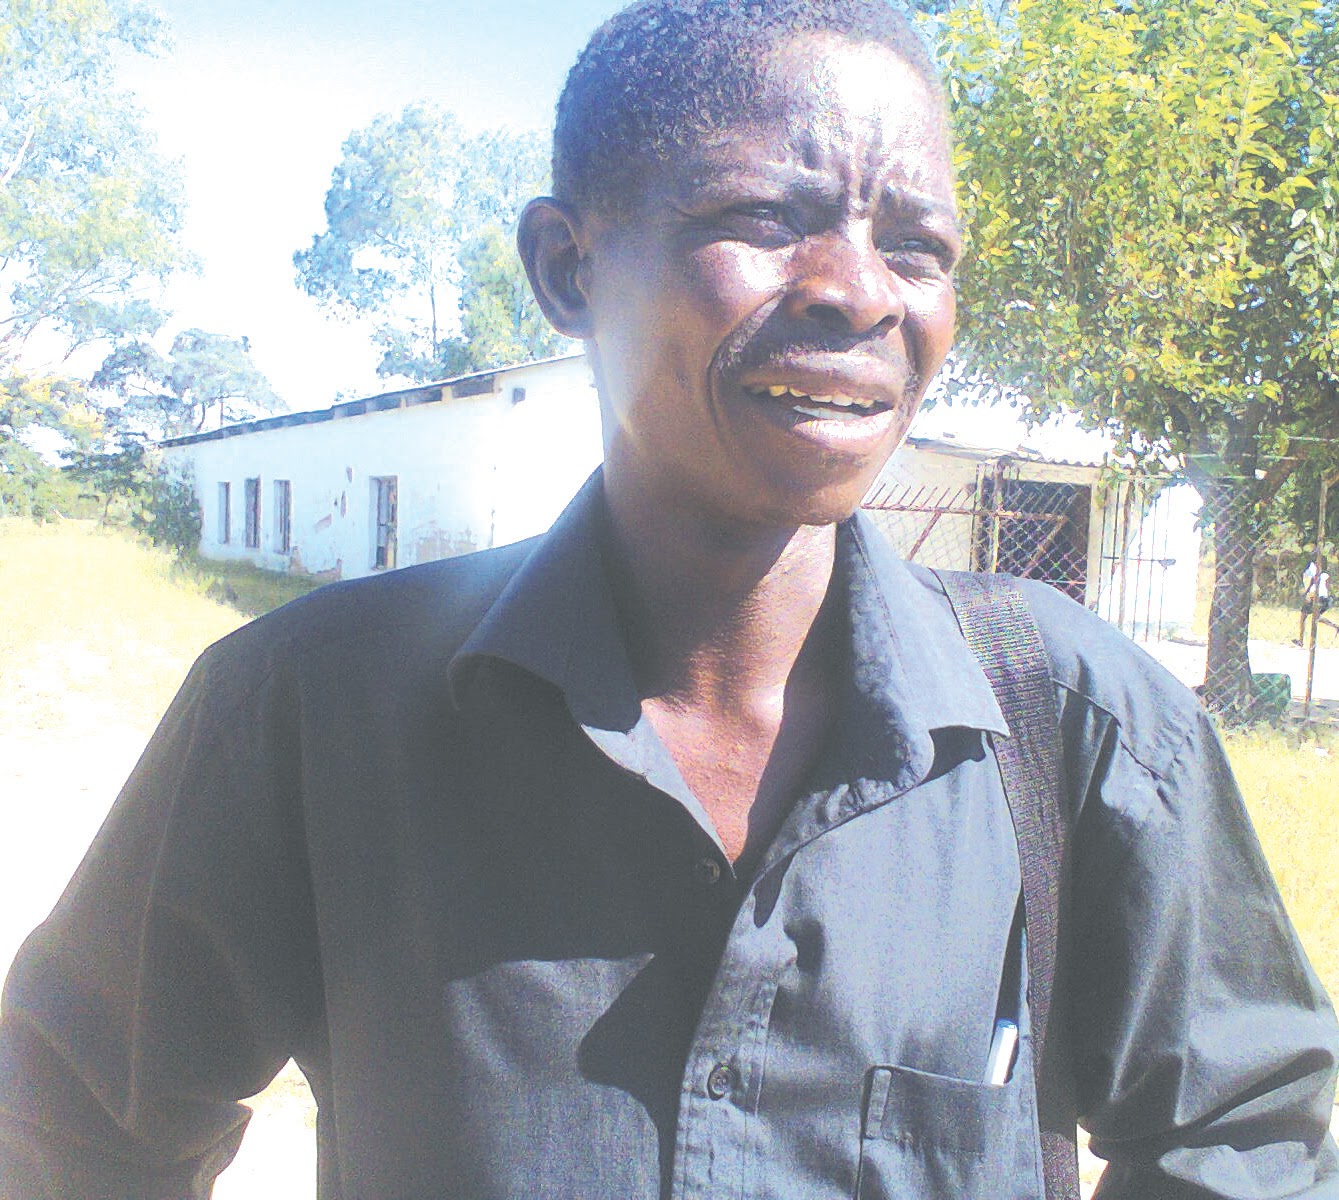 Gutu High: Zanu PF Gutu Activist Sentenced For Assaulting CCJP Member